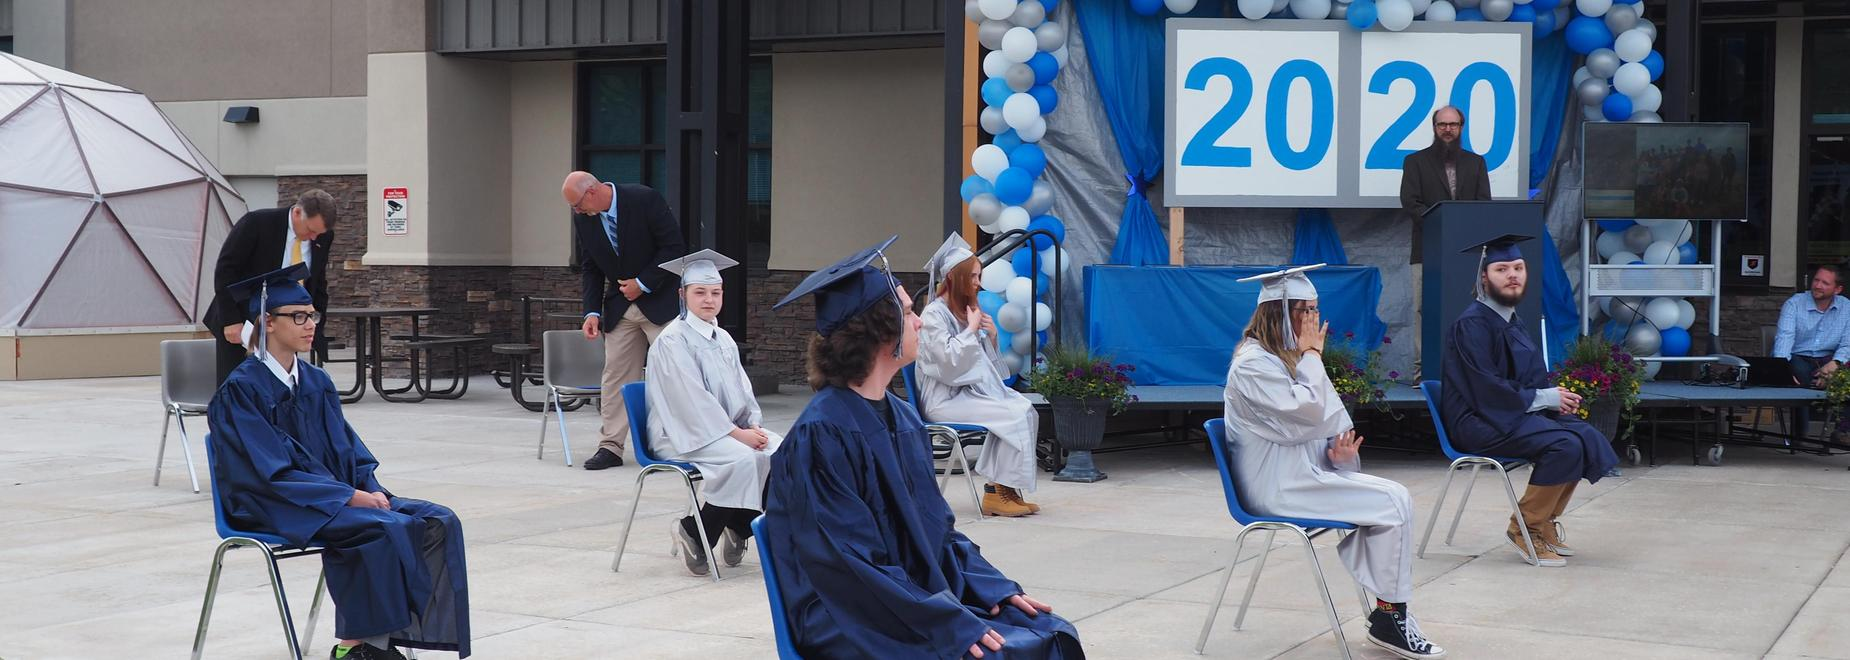 2020 grads sitting in chairs